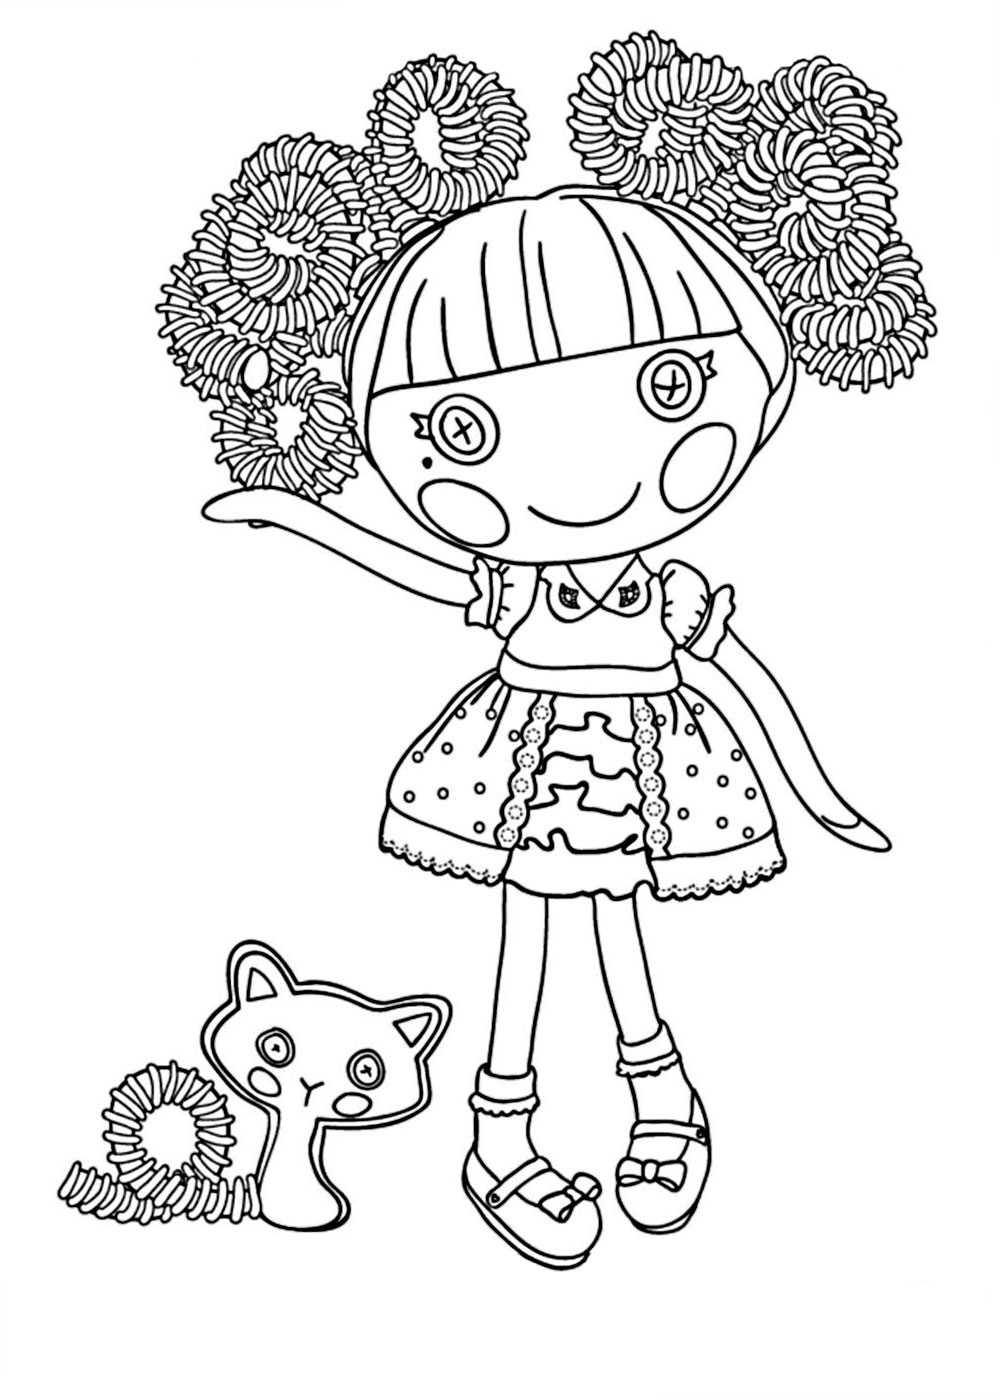 Lalaloopsy Coloring Pages To P Coloring Pages Lalaloopsy Colouring Pages